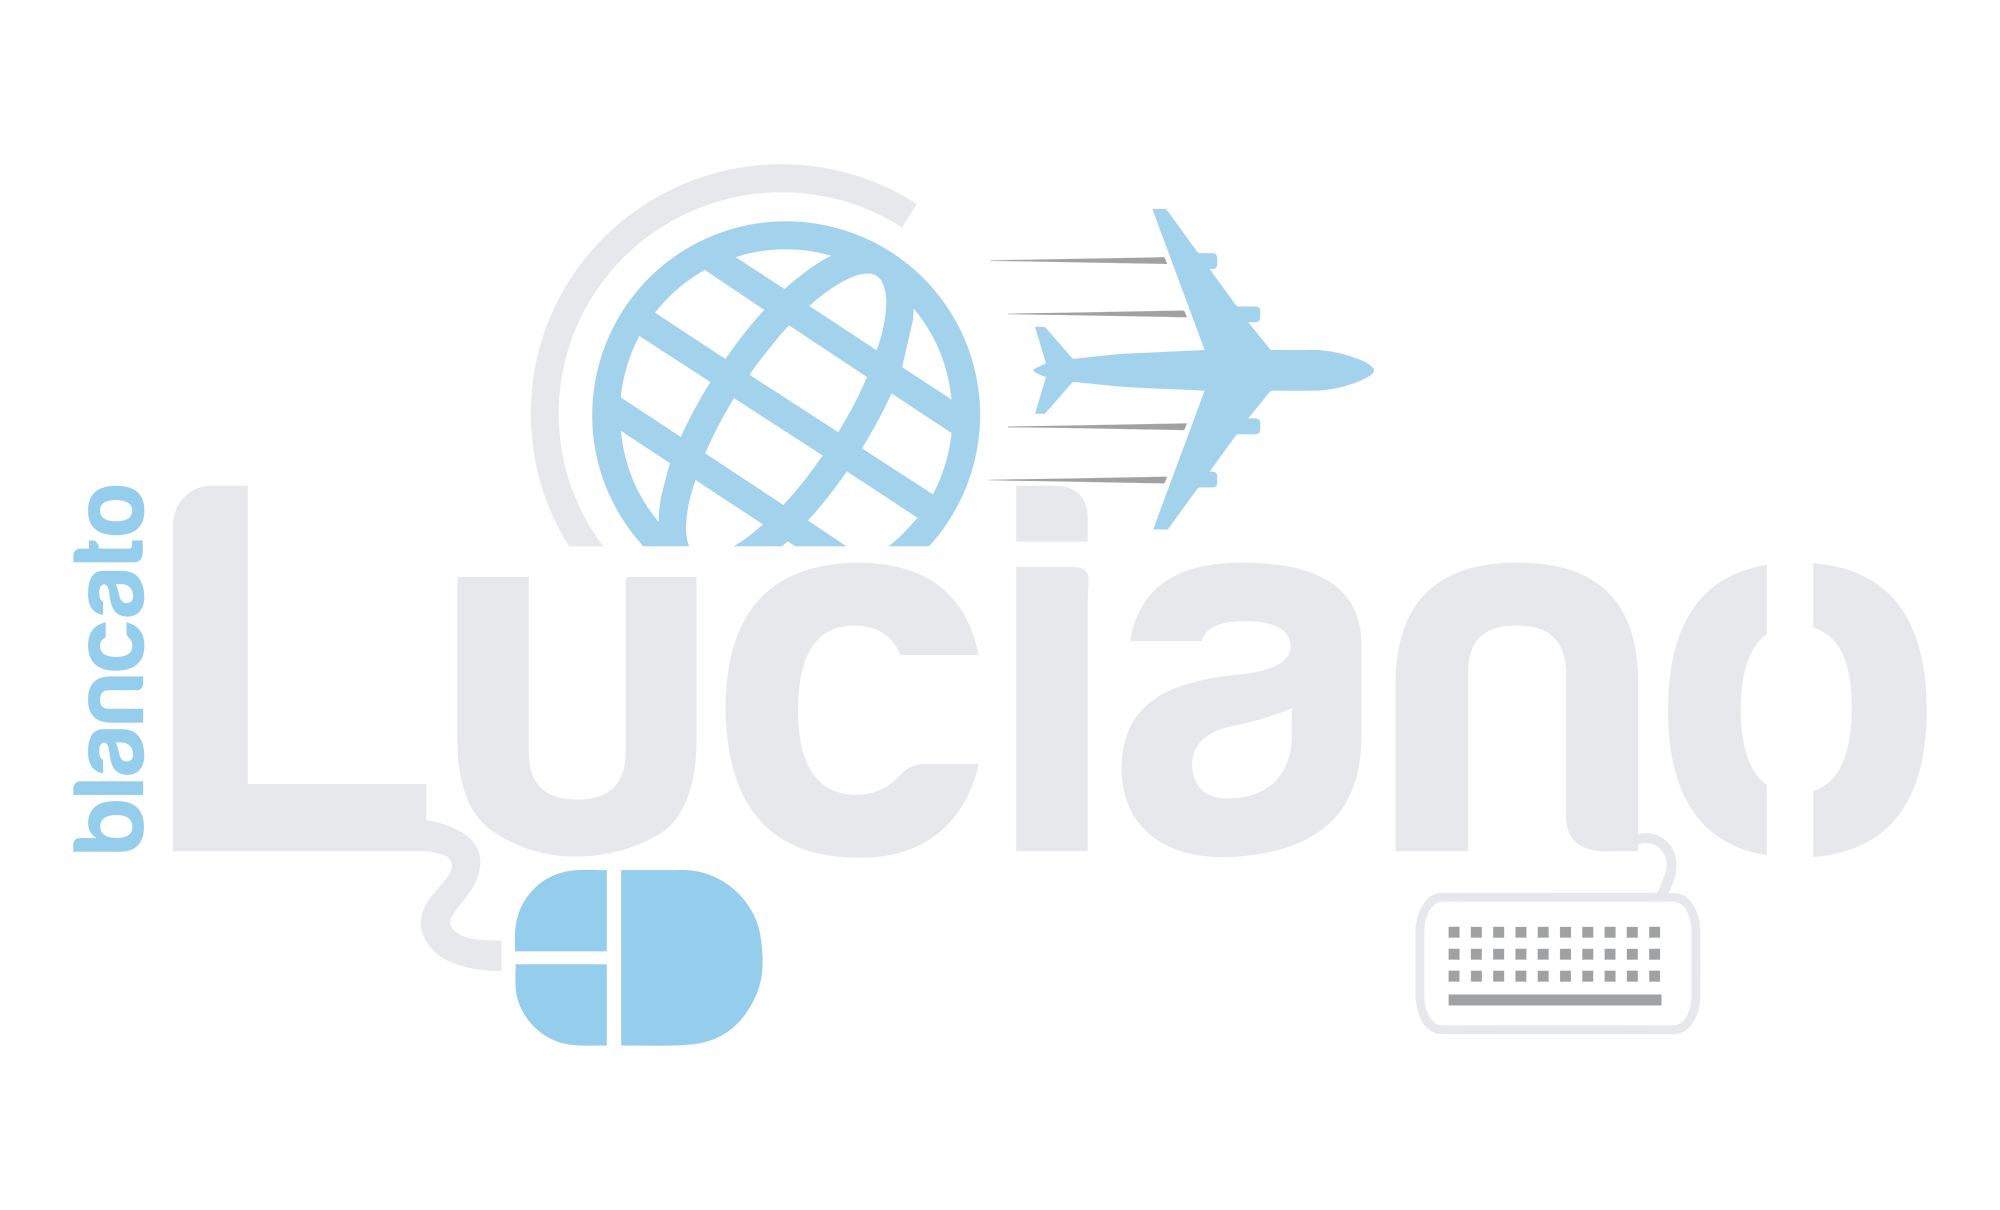 Luciano Blancato - Travel Blogger